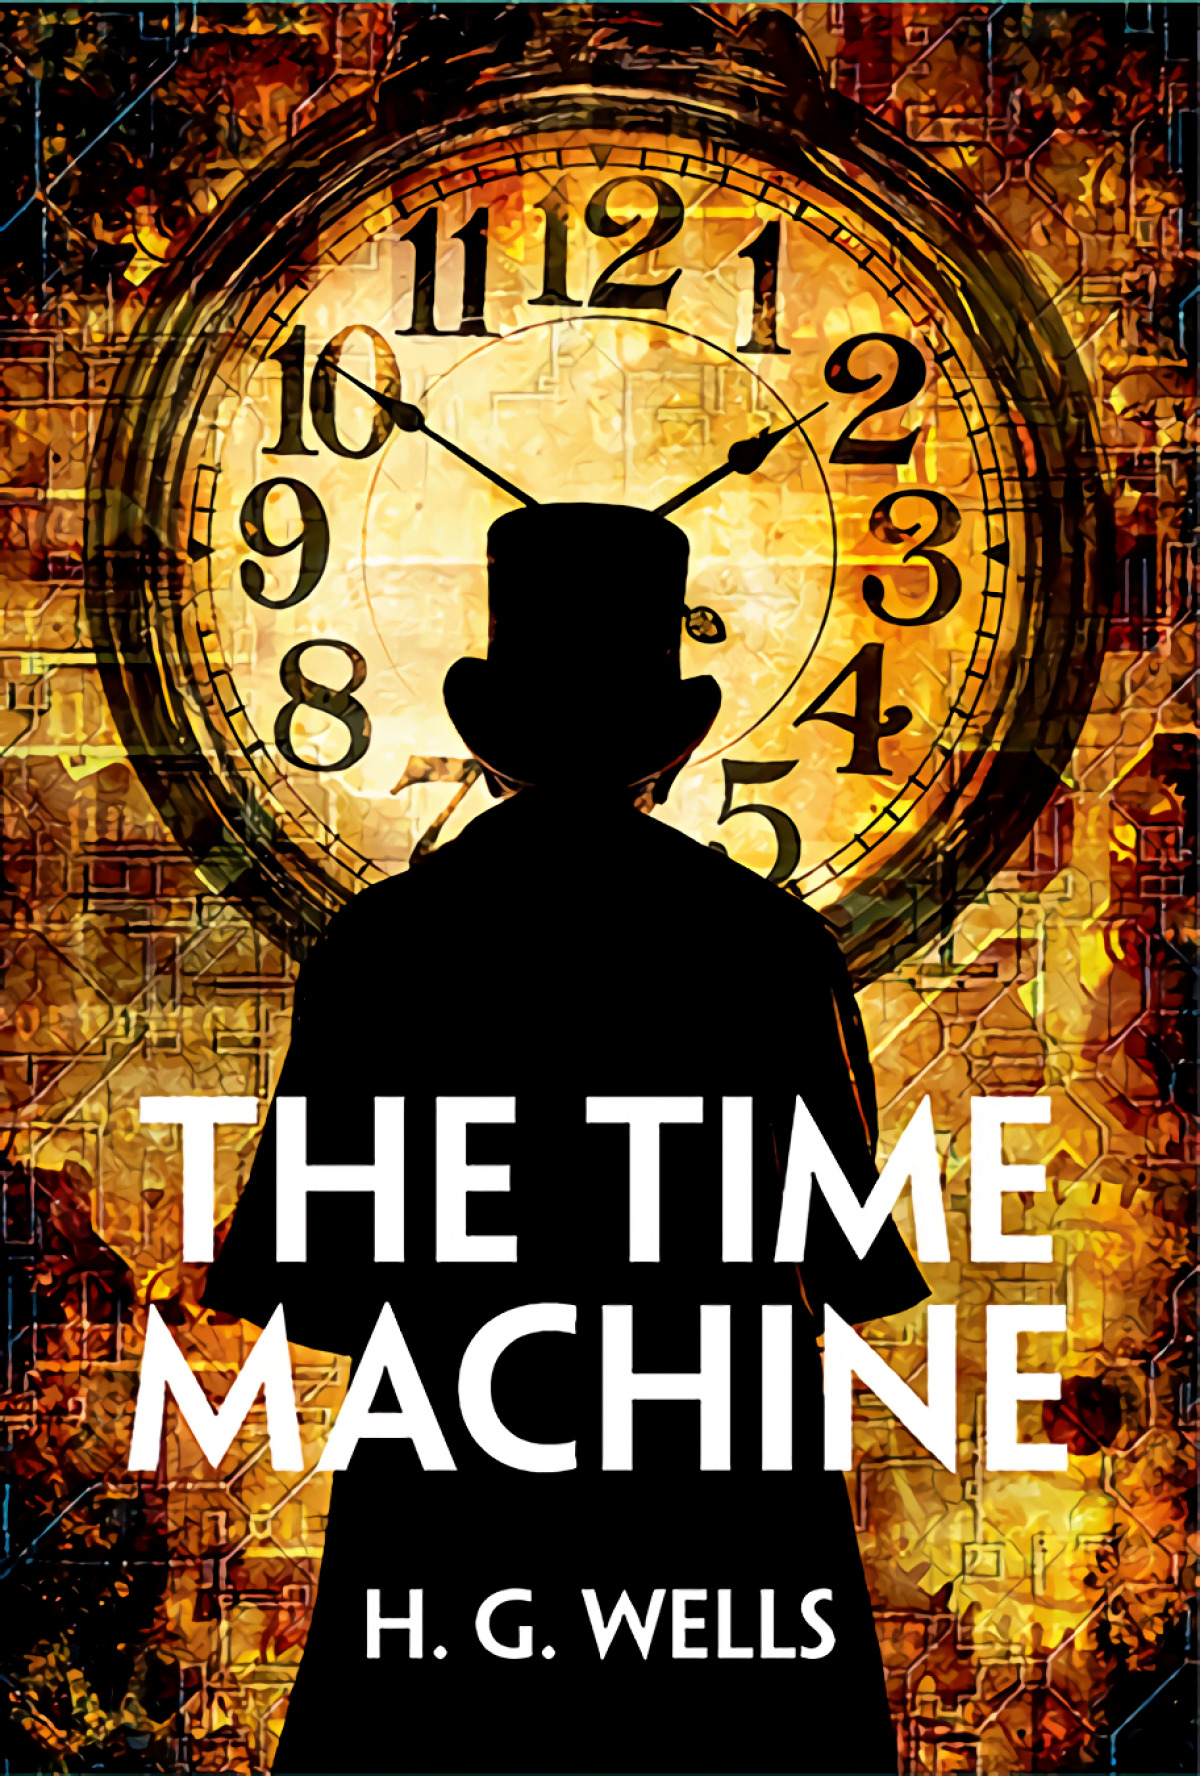 Rollercoasters: The Time Machine: H.G. Wells